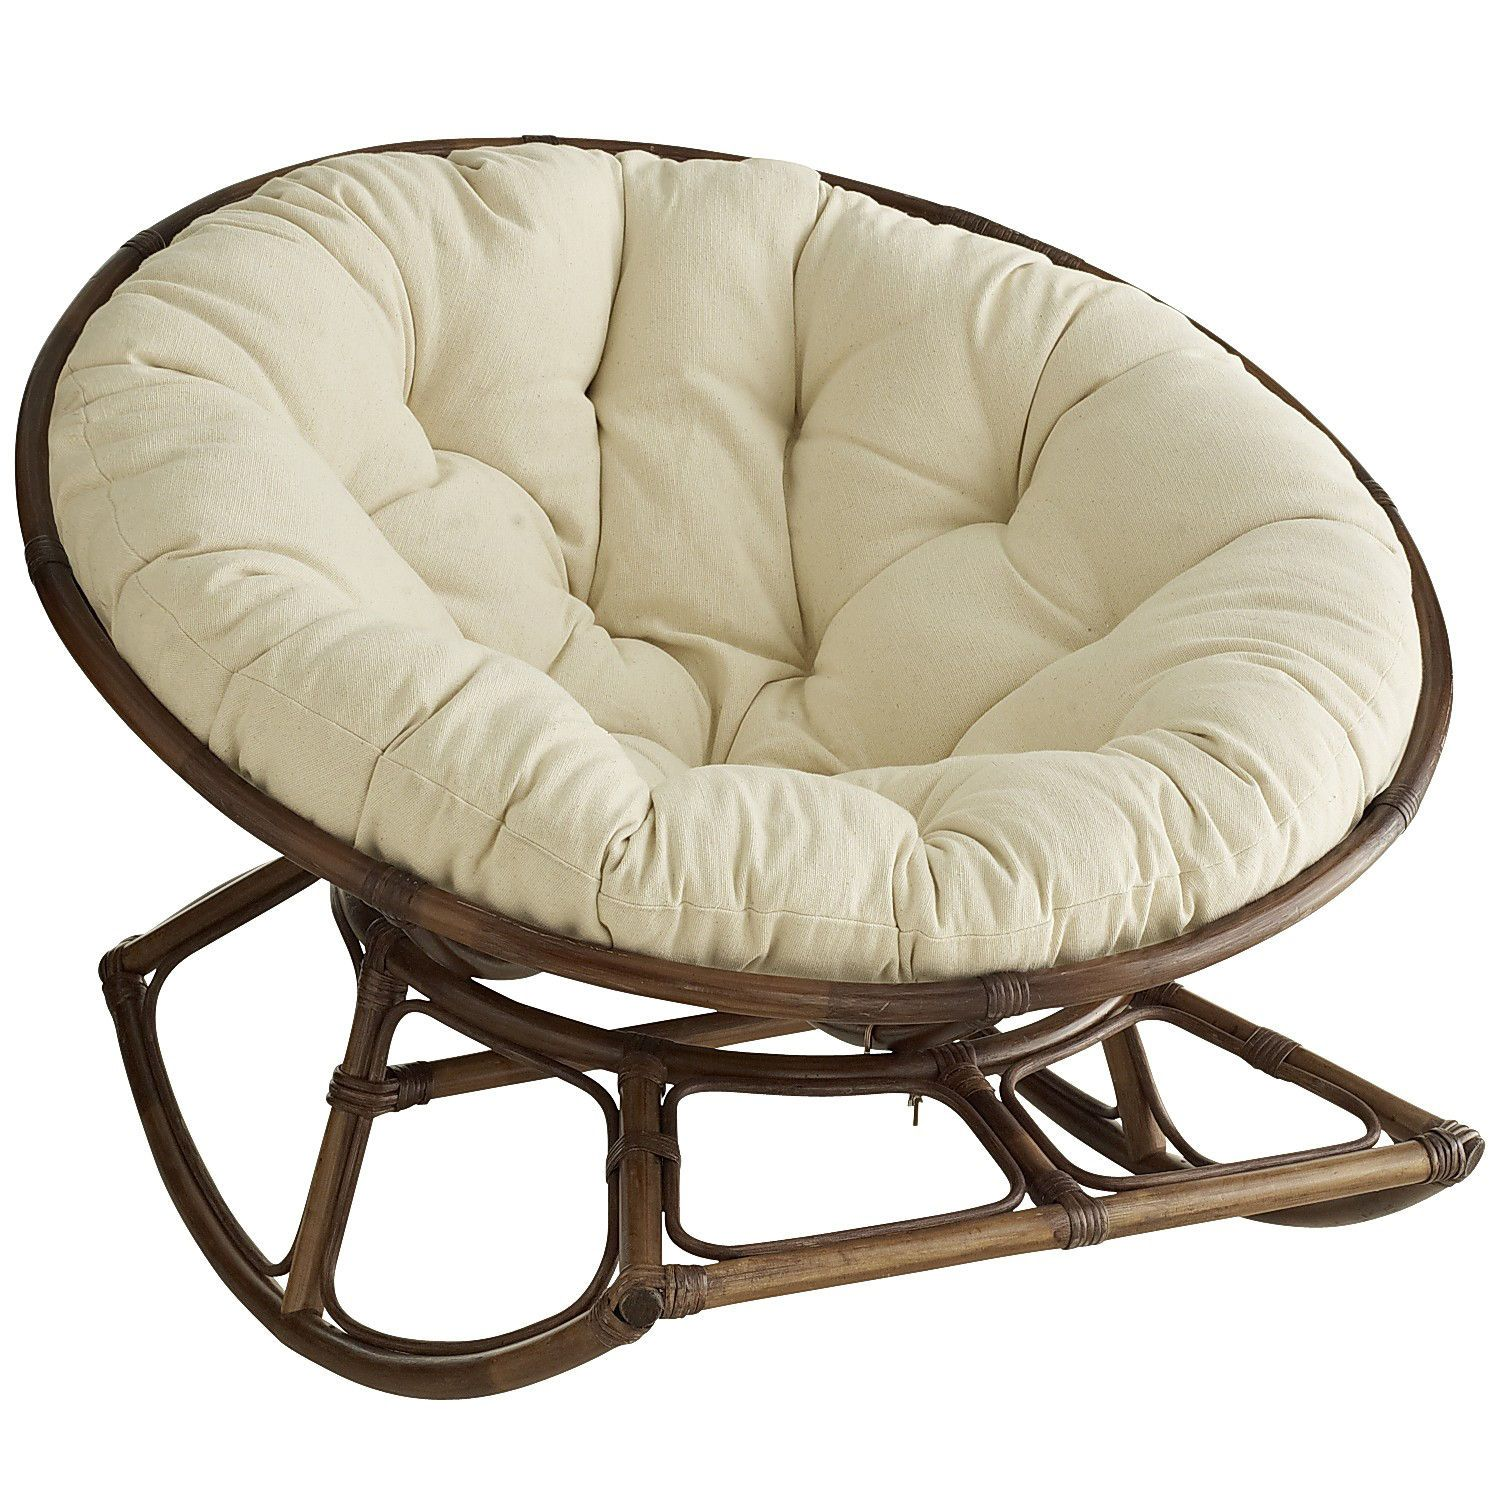 papasan lounge chair cushion high chairs at babies r us a that rocks uh yes please rockasan